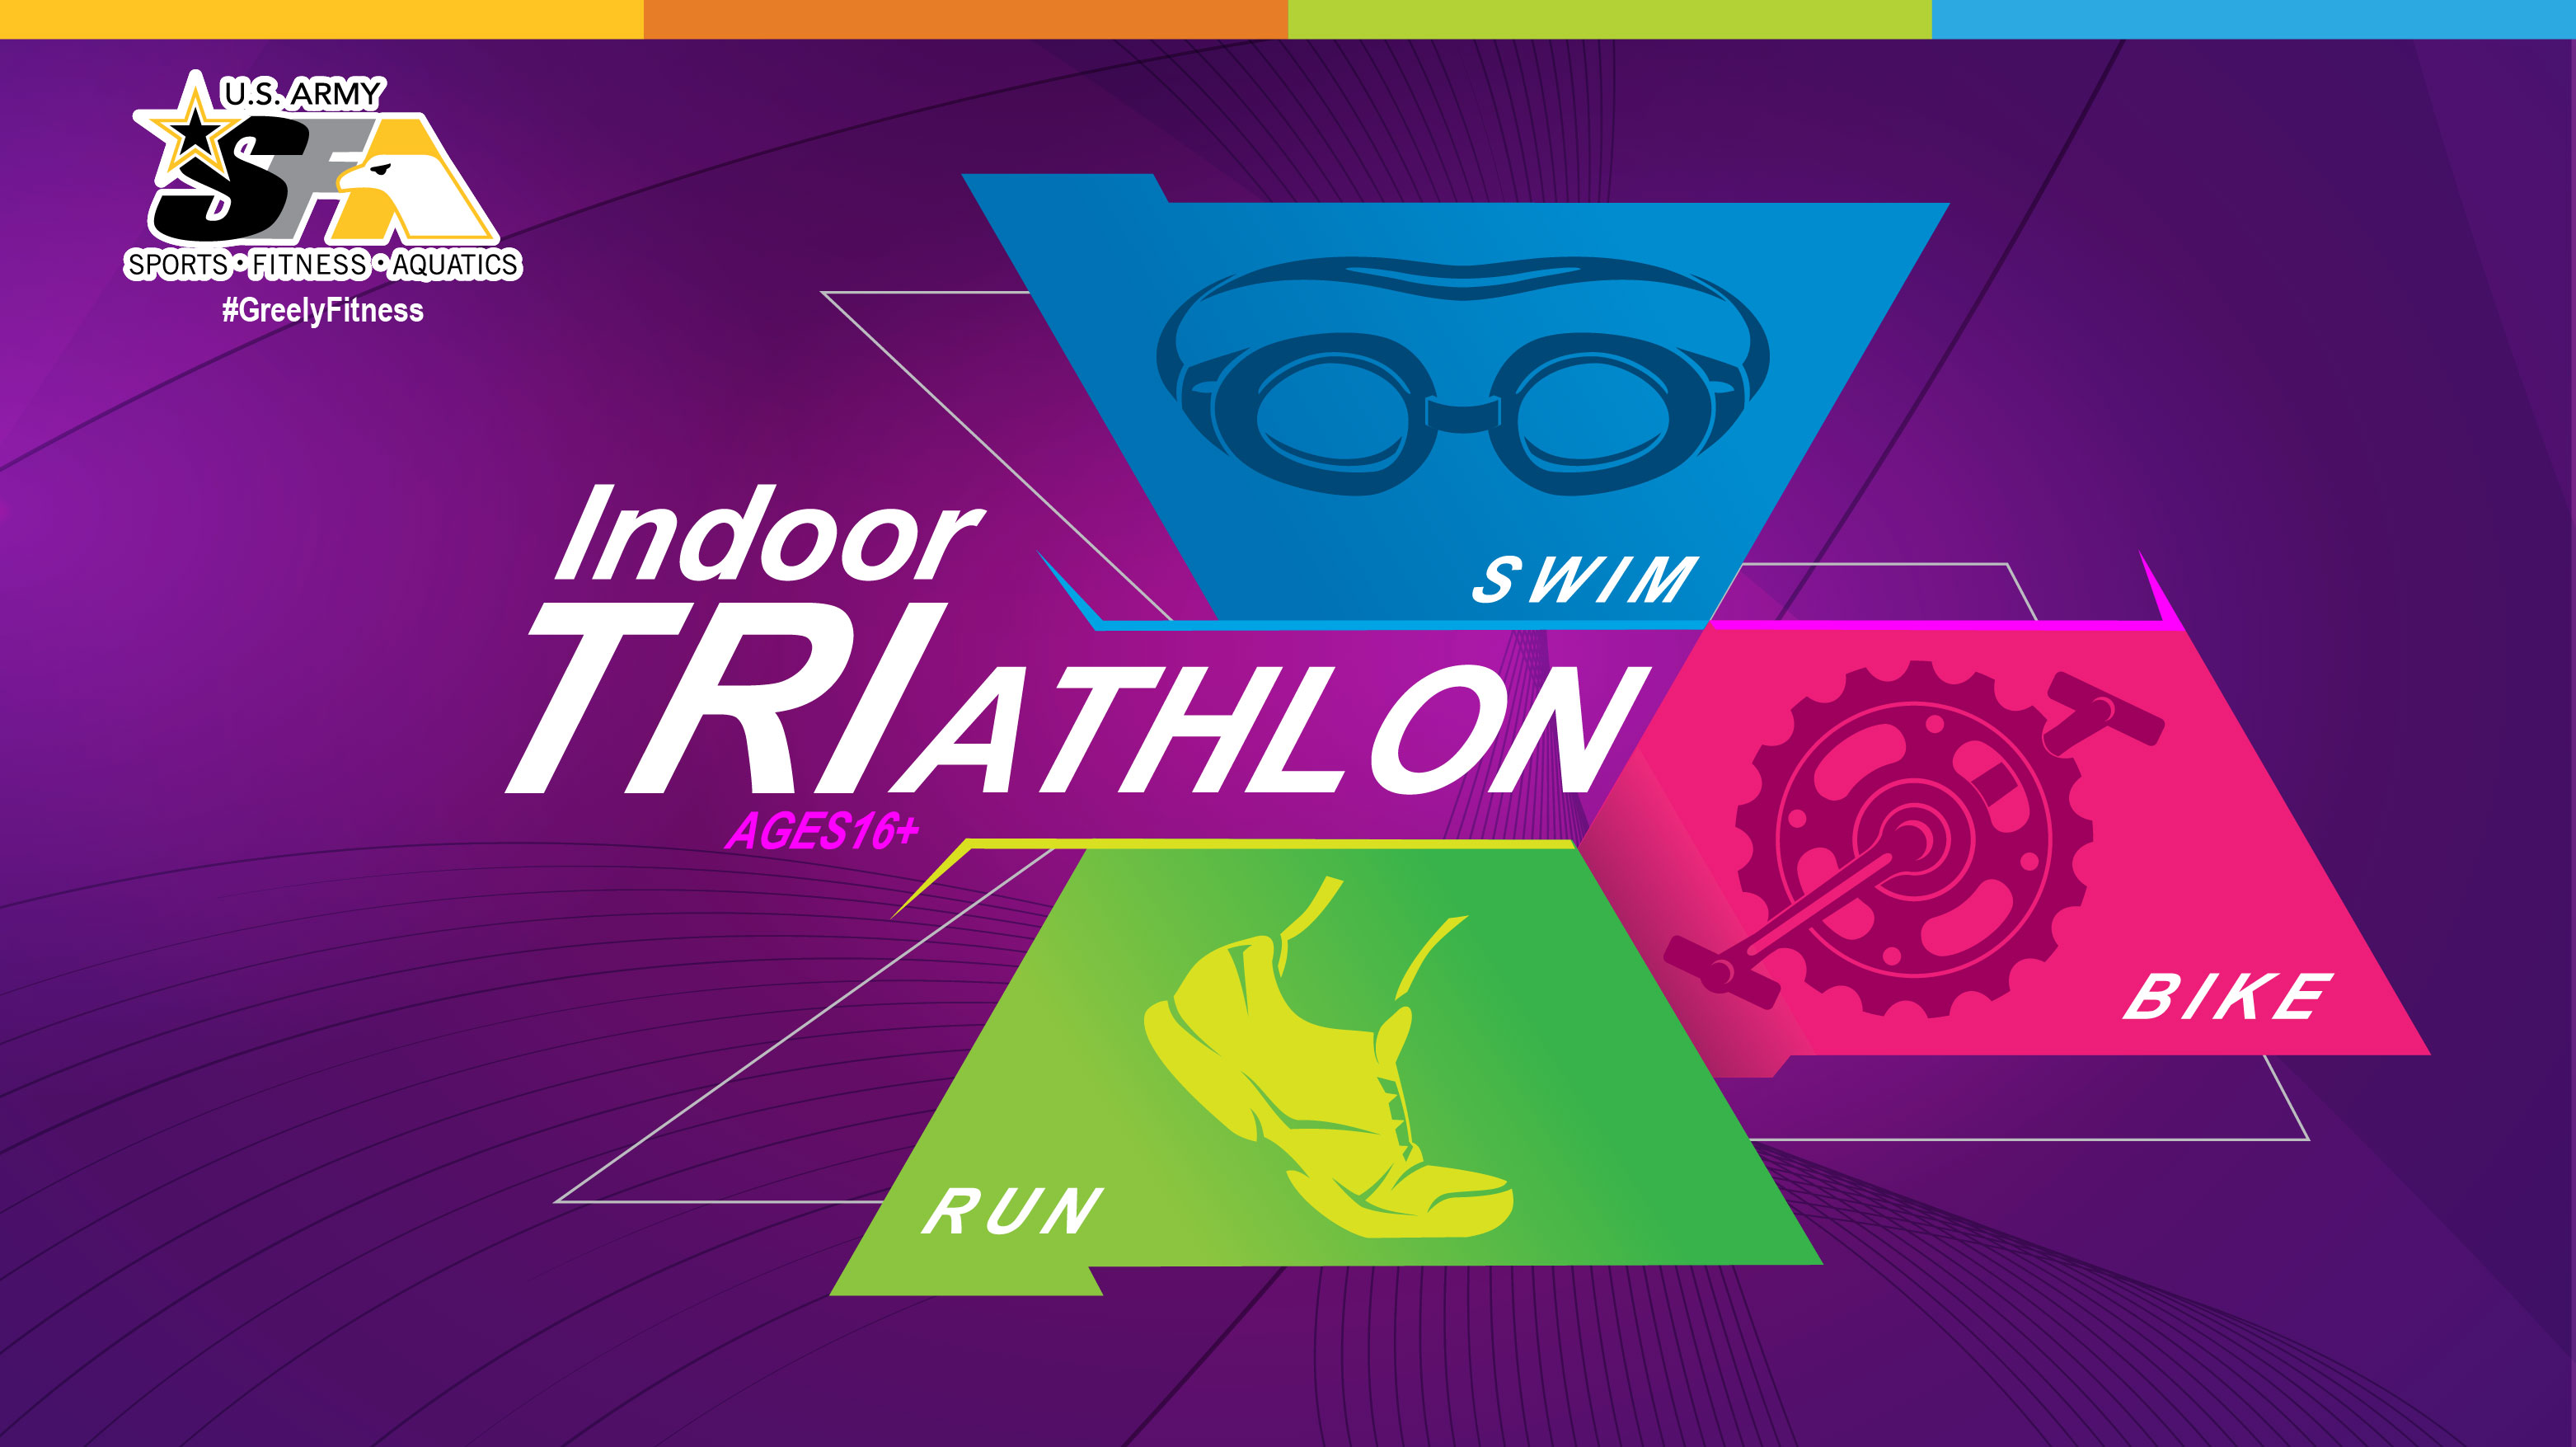 20/20/20 Indoor Triathlon